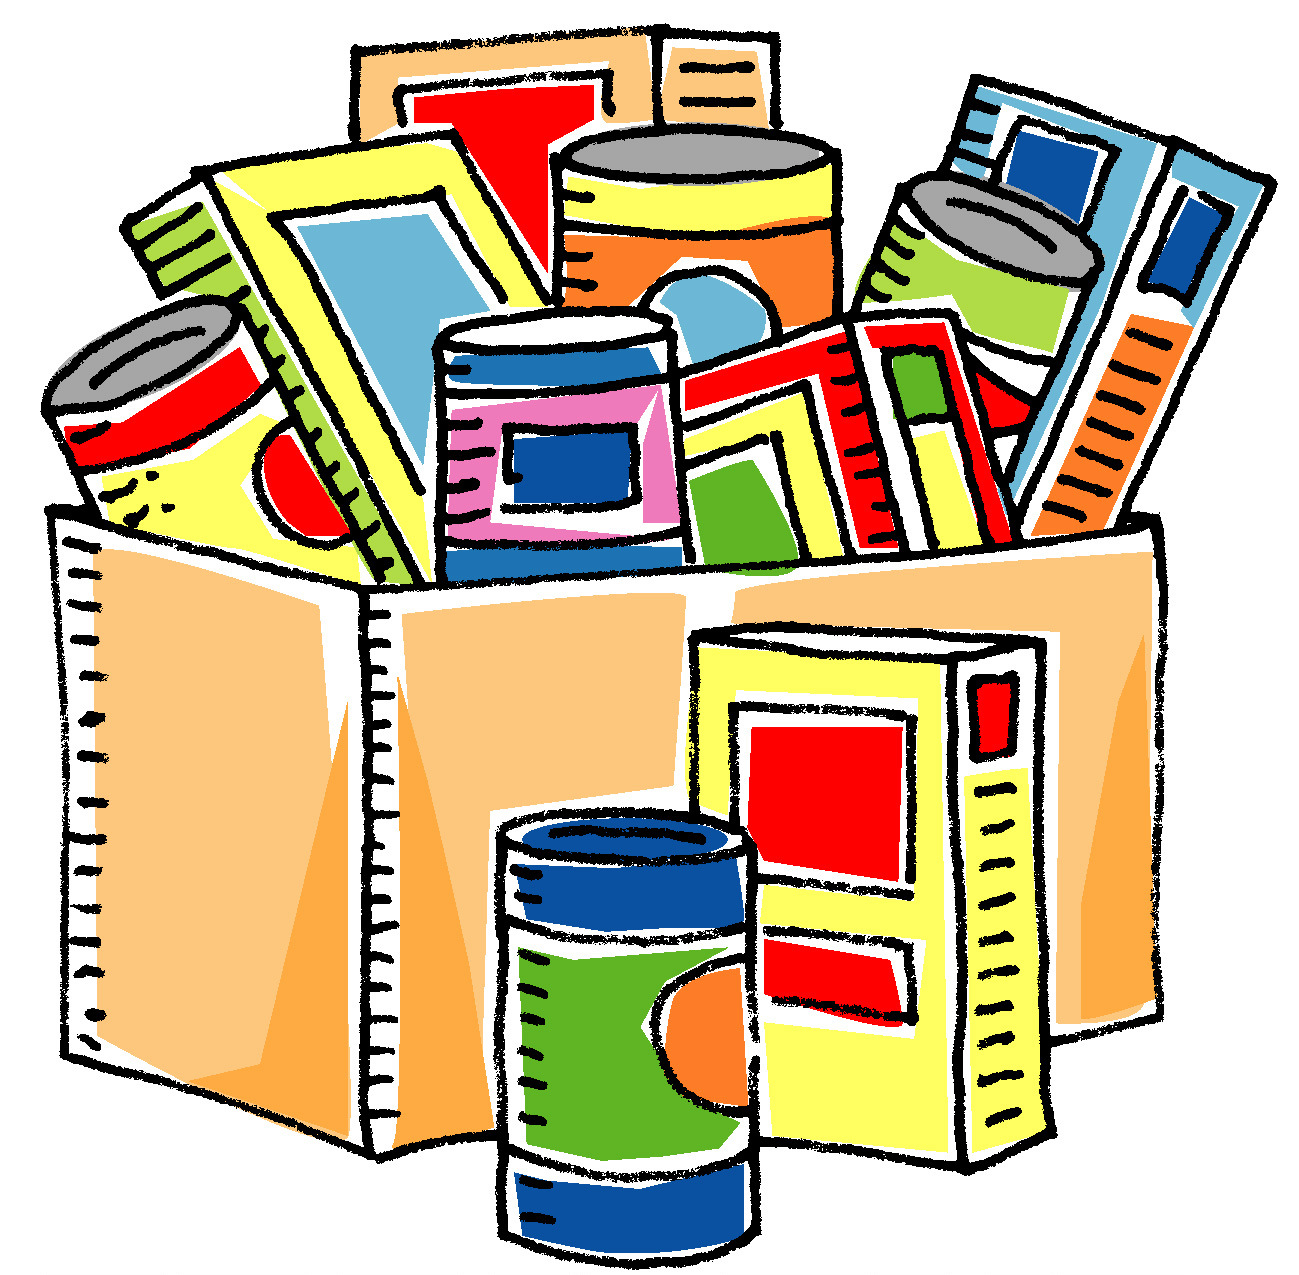 Church Food Pantry Clip Art.